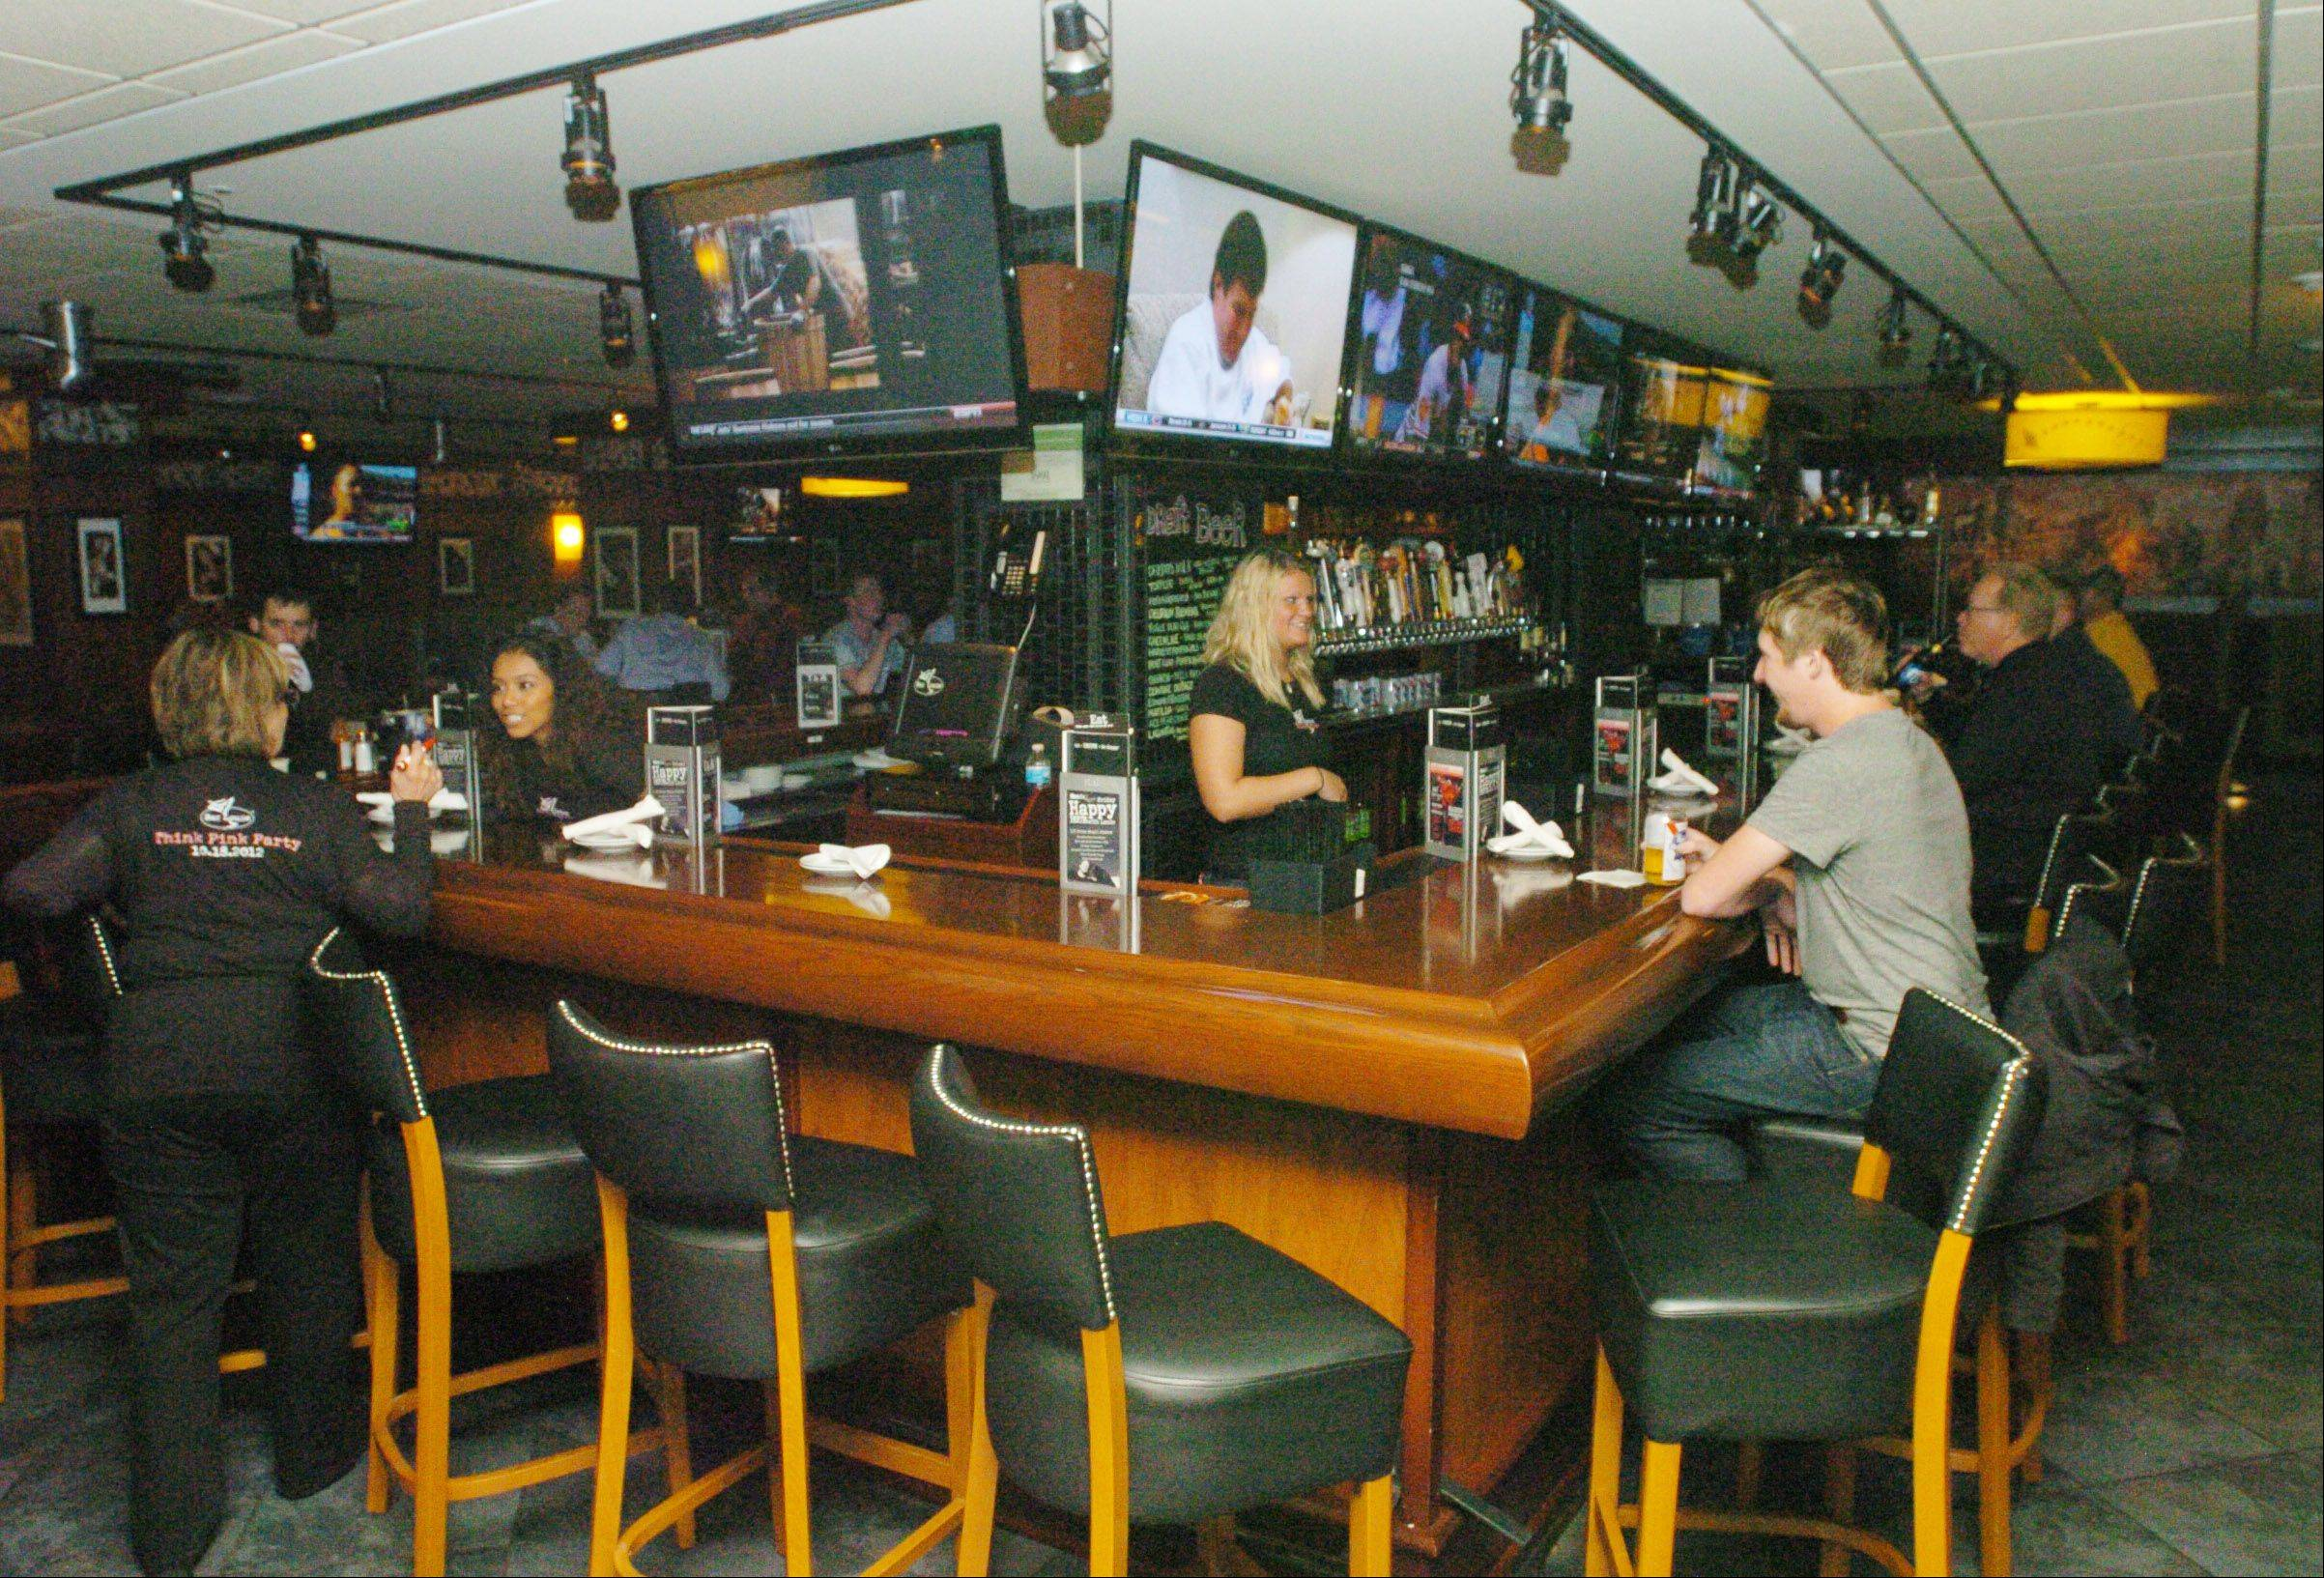 Guests can sip a cold beer or a martini while watching sports at Bar Louie.